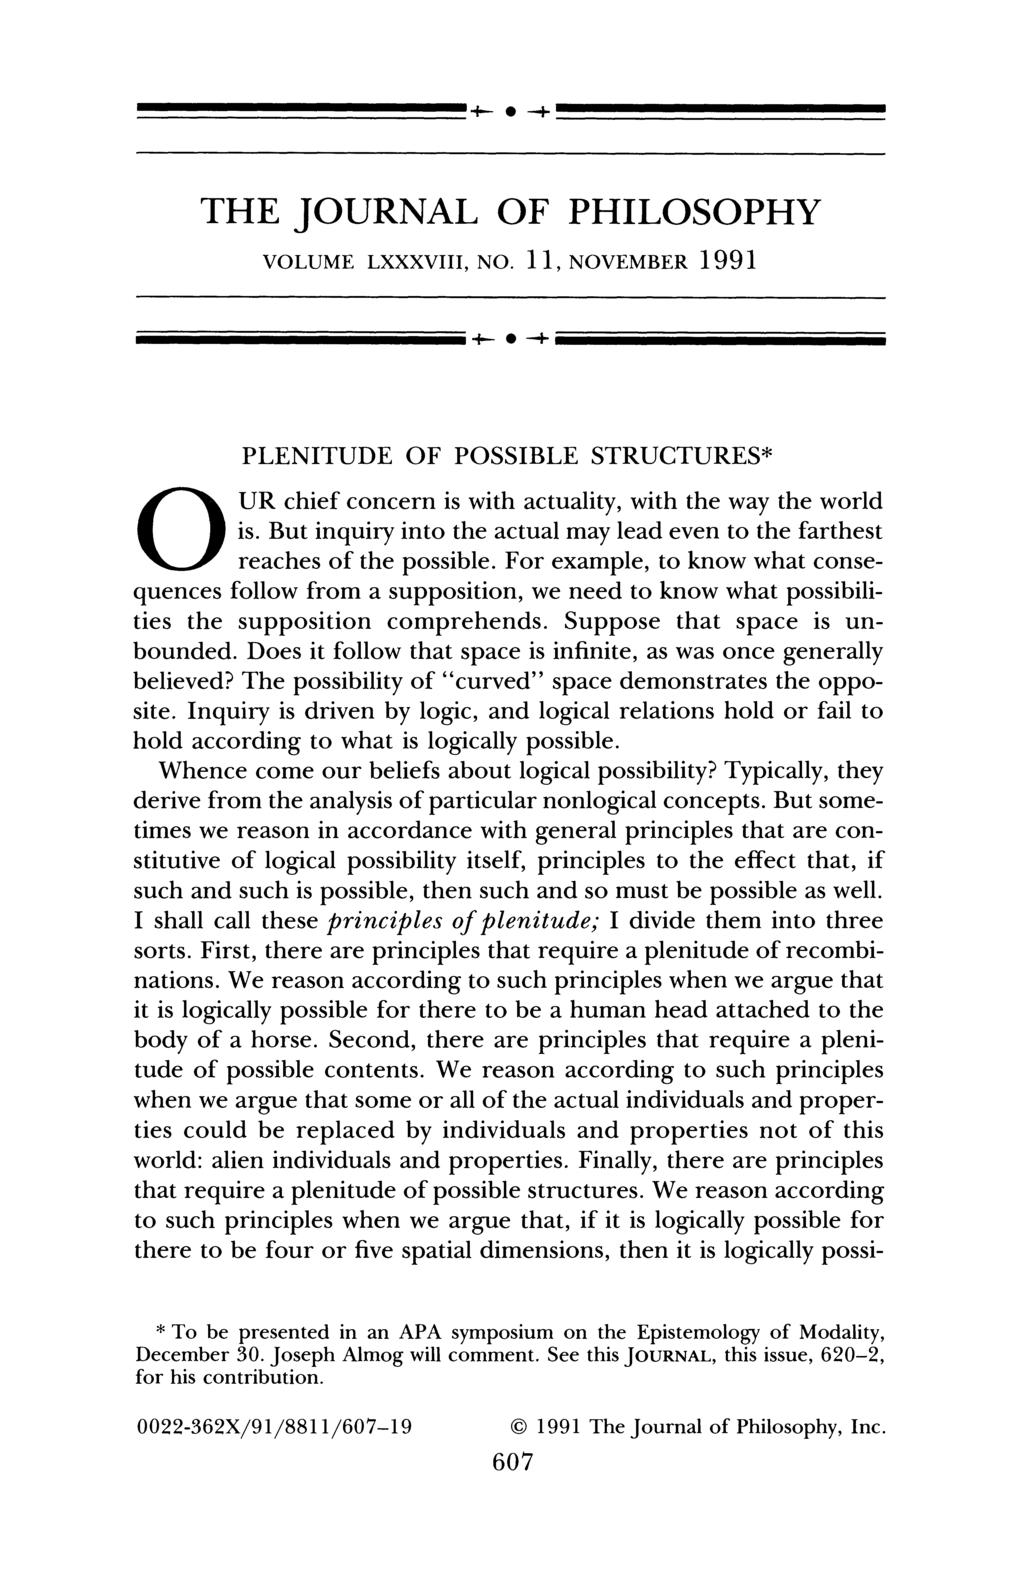 THE JOURNAL OF PHILOSOPHY VOLUME LXXXVIII, NO. 11, NOVEMBER 1991 PLENITUDE OF POSSIBLE STRUCTURES* O U R chief concern is with actuality, with the way the world is.